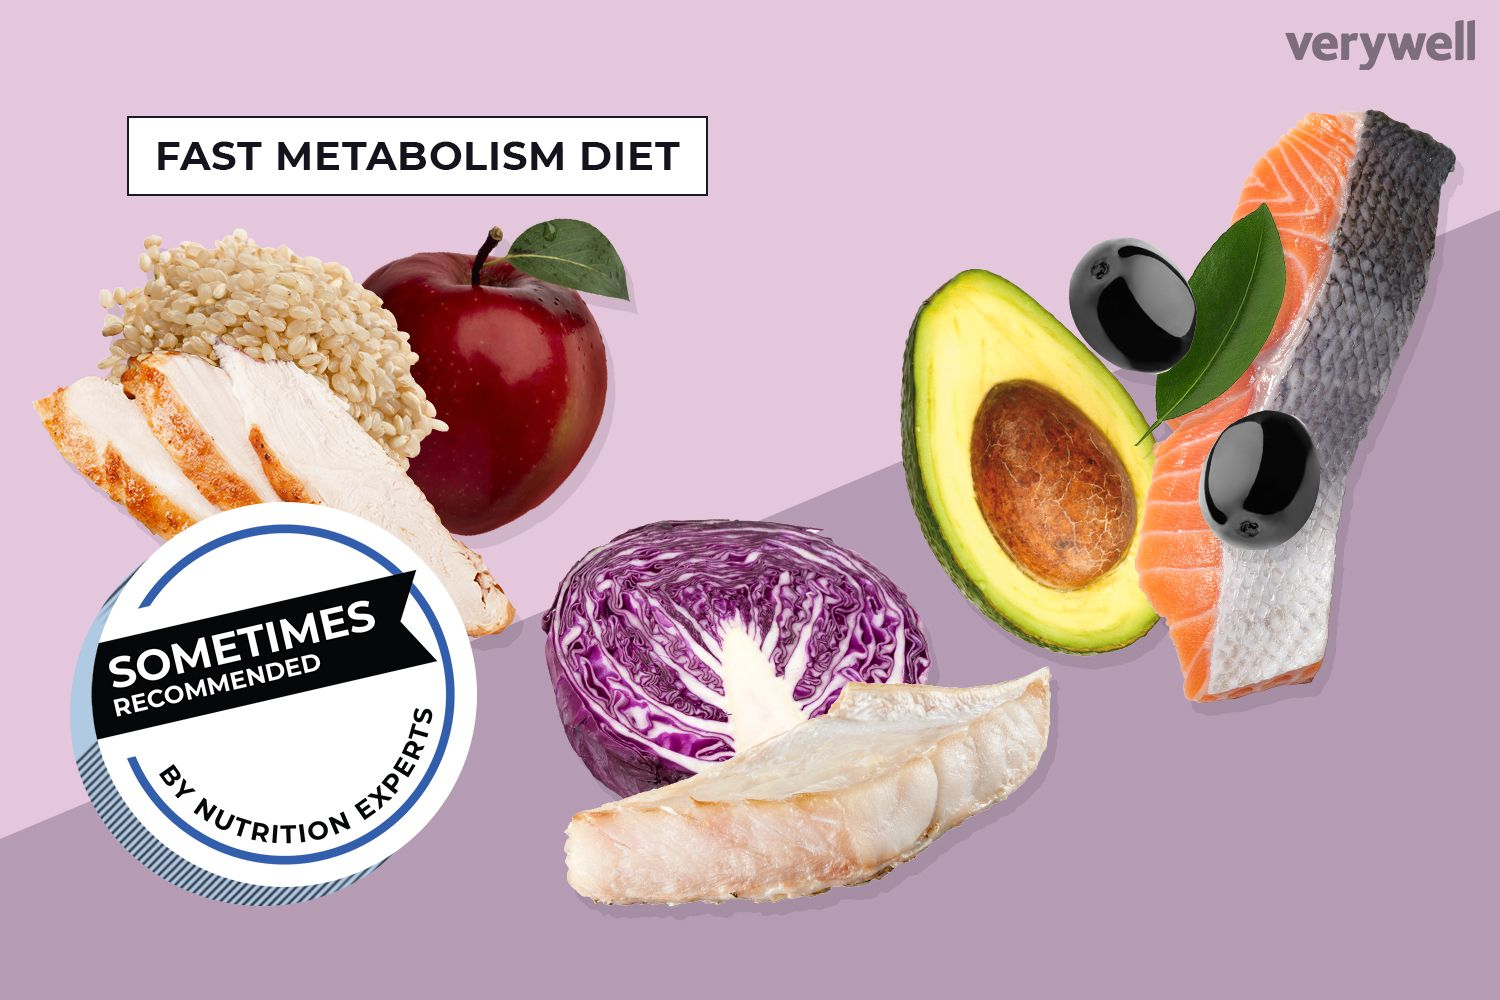 how to diet while maintaining metabolism